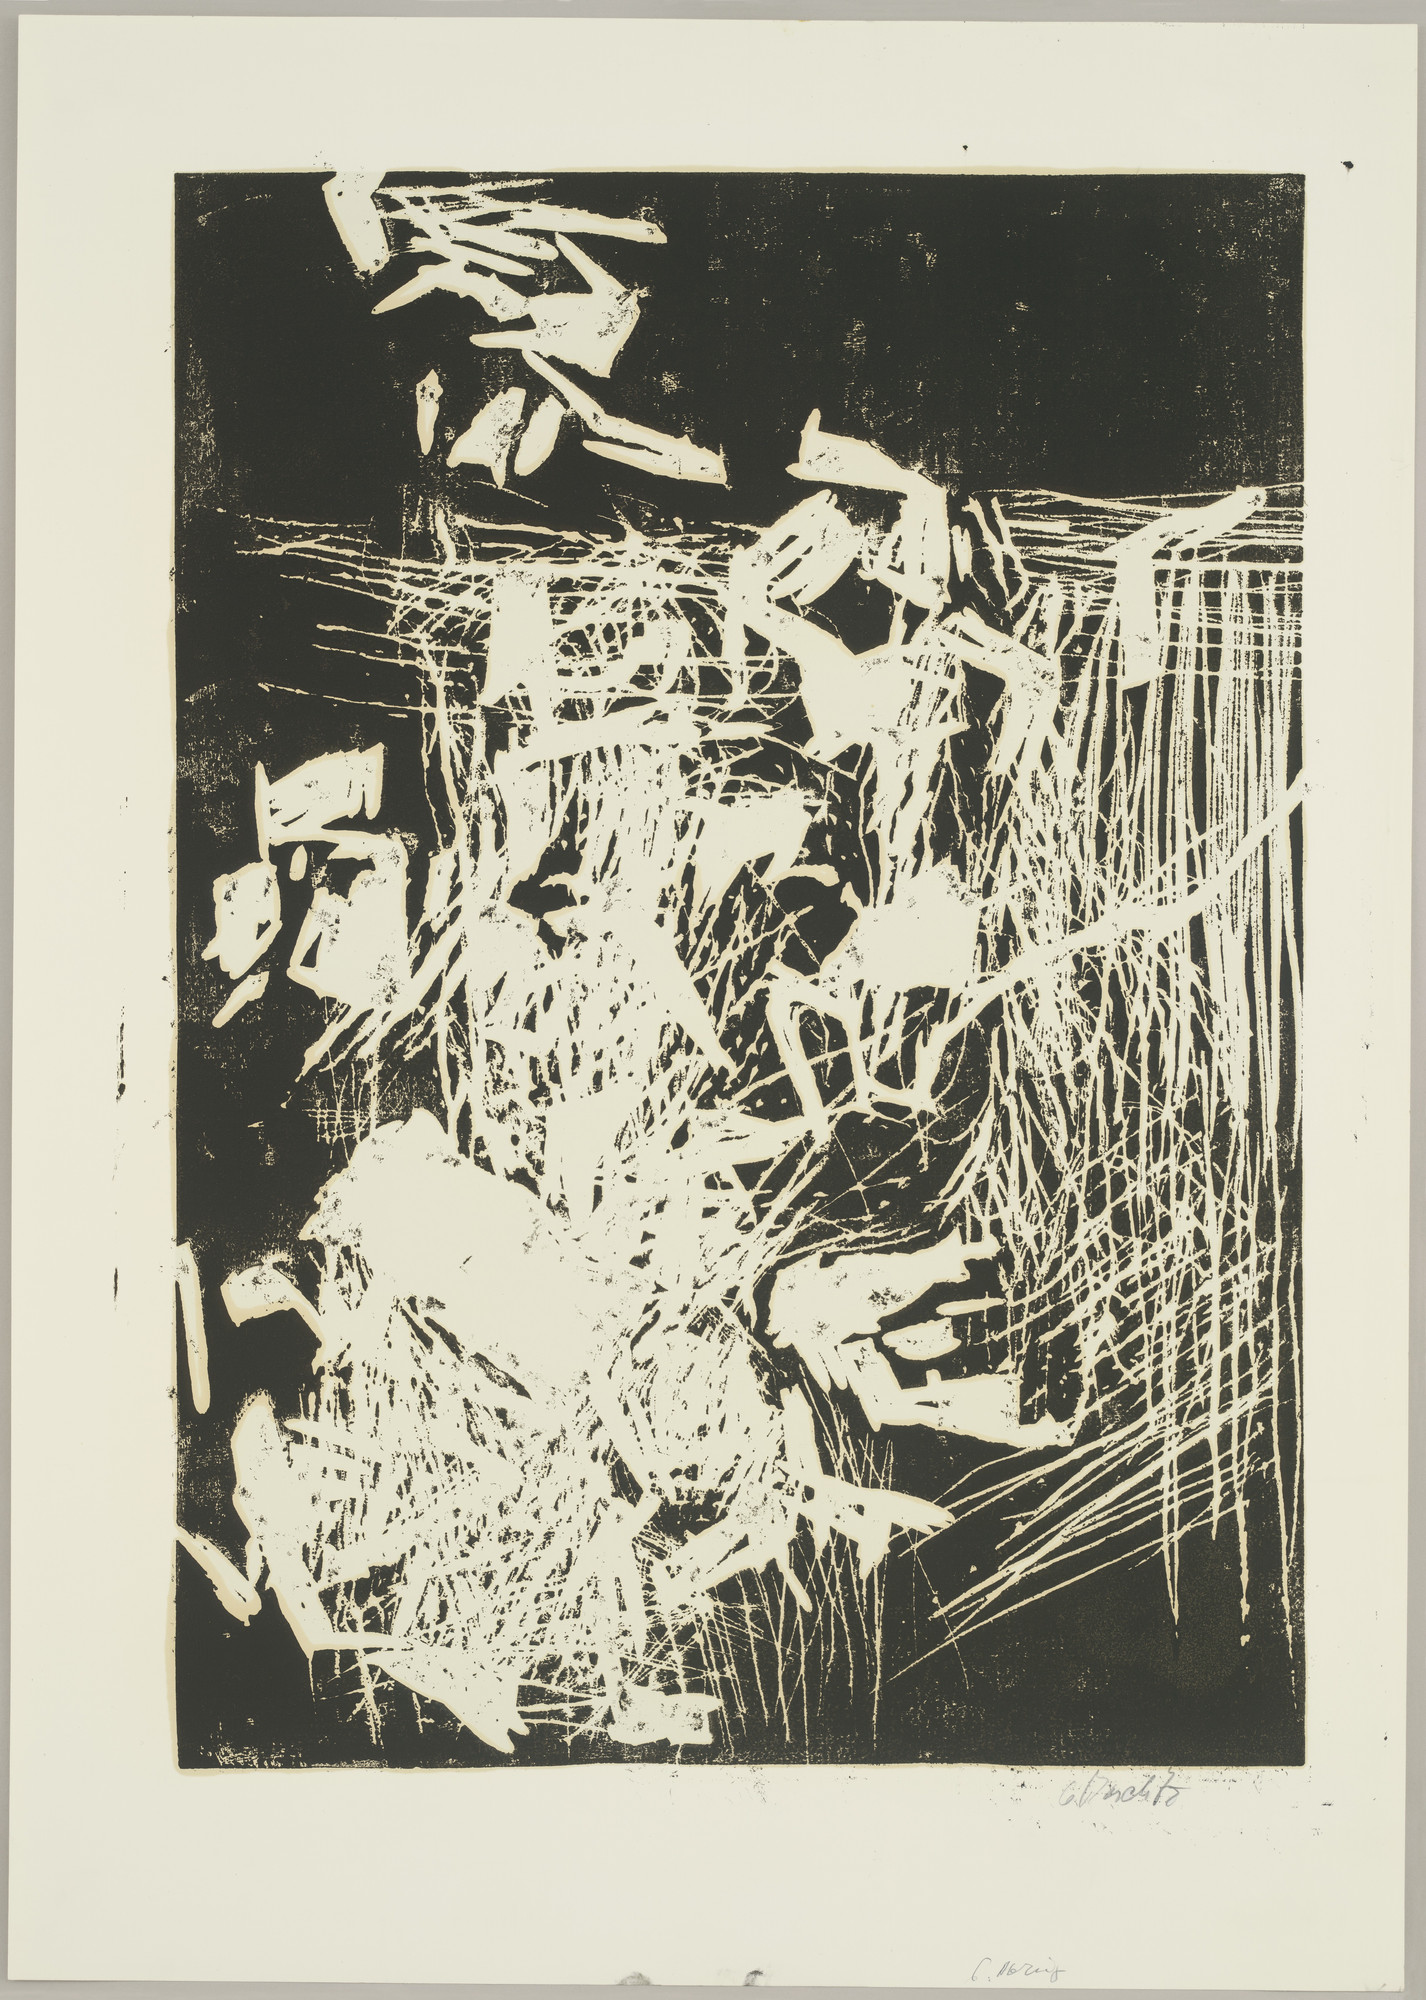 Georg Baselitz. Woman at the Window (Frau am Fenster), state VI. 1979